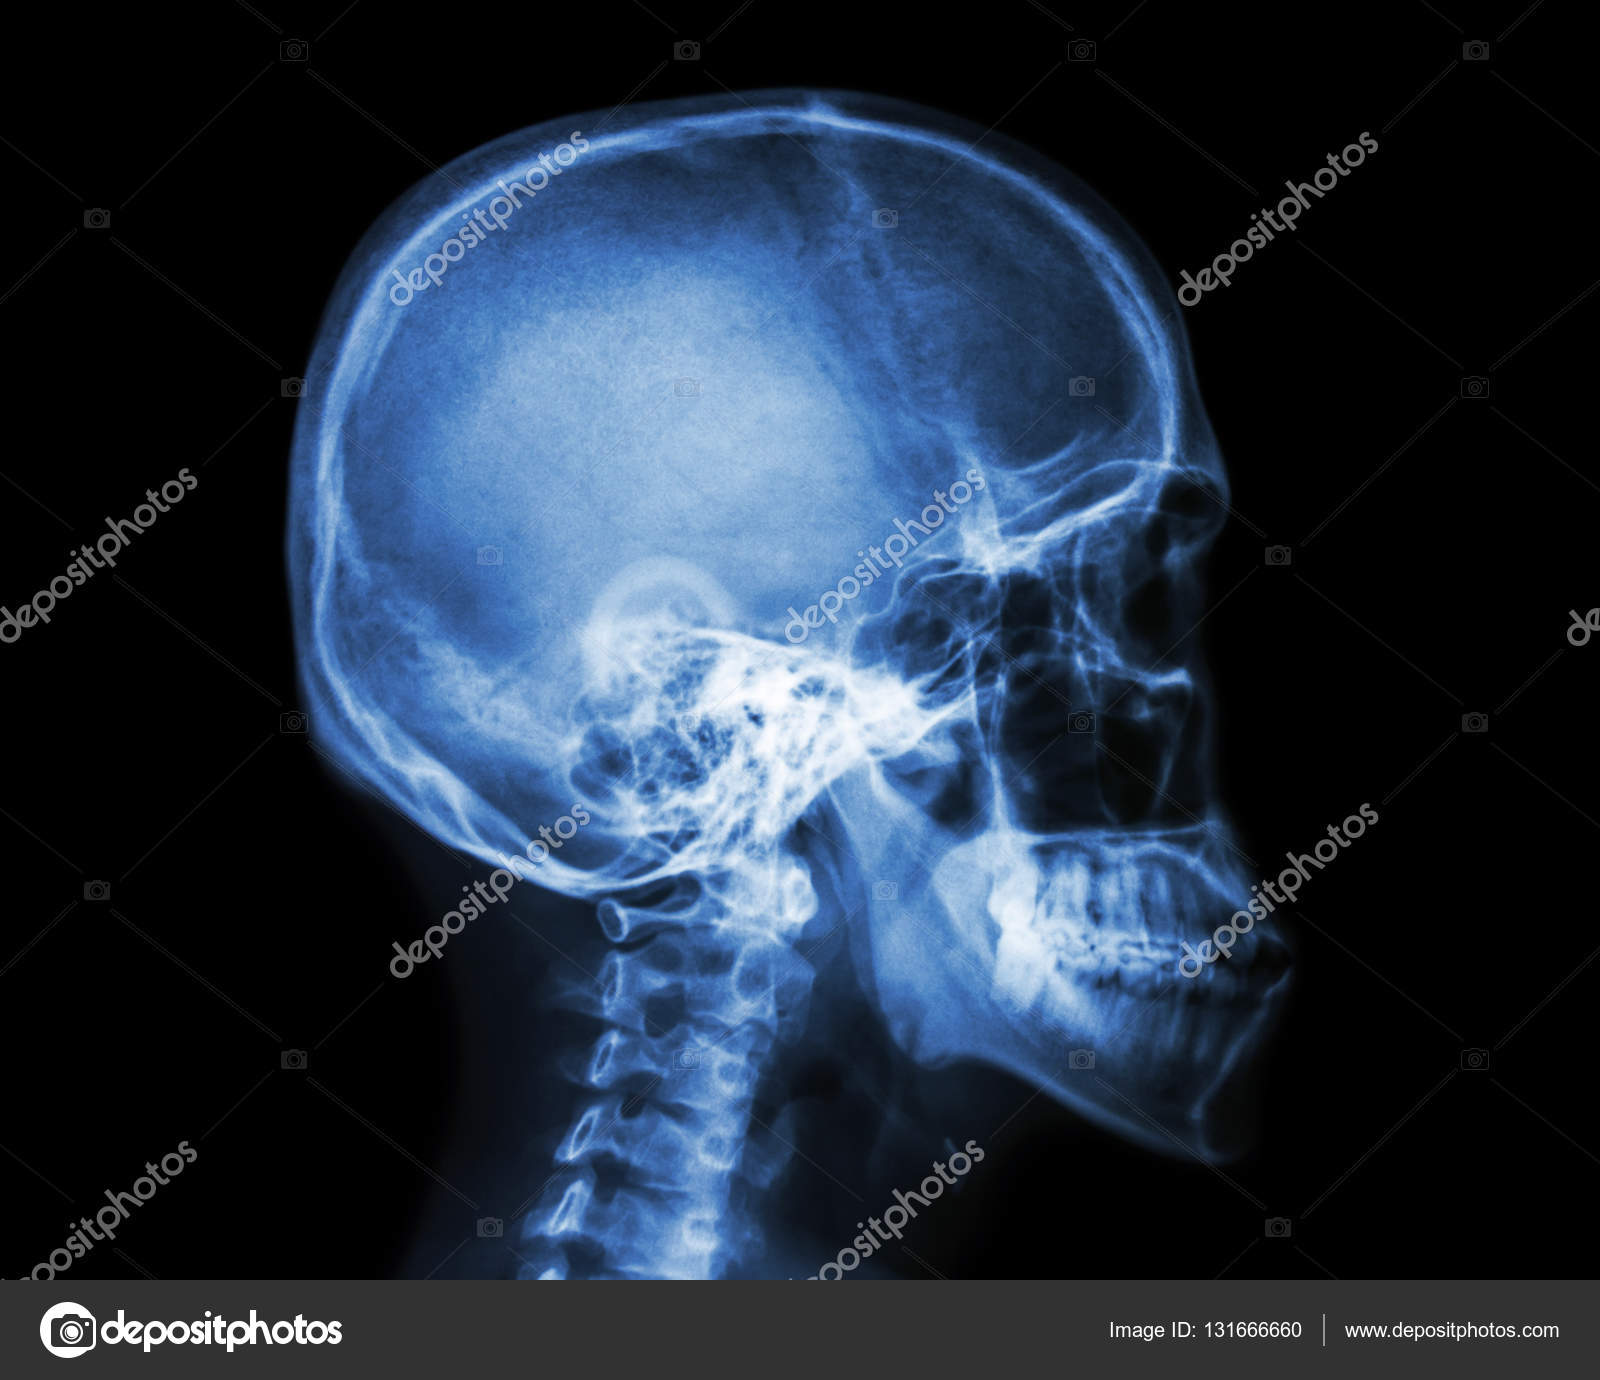 Film X Ray Skull And Cervical Spine Lateral View Stock Photo